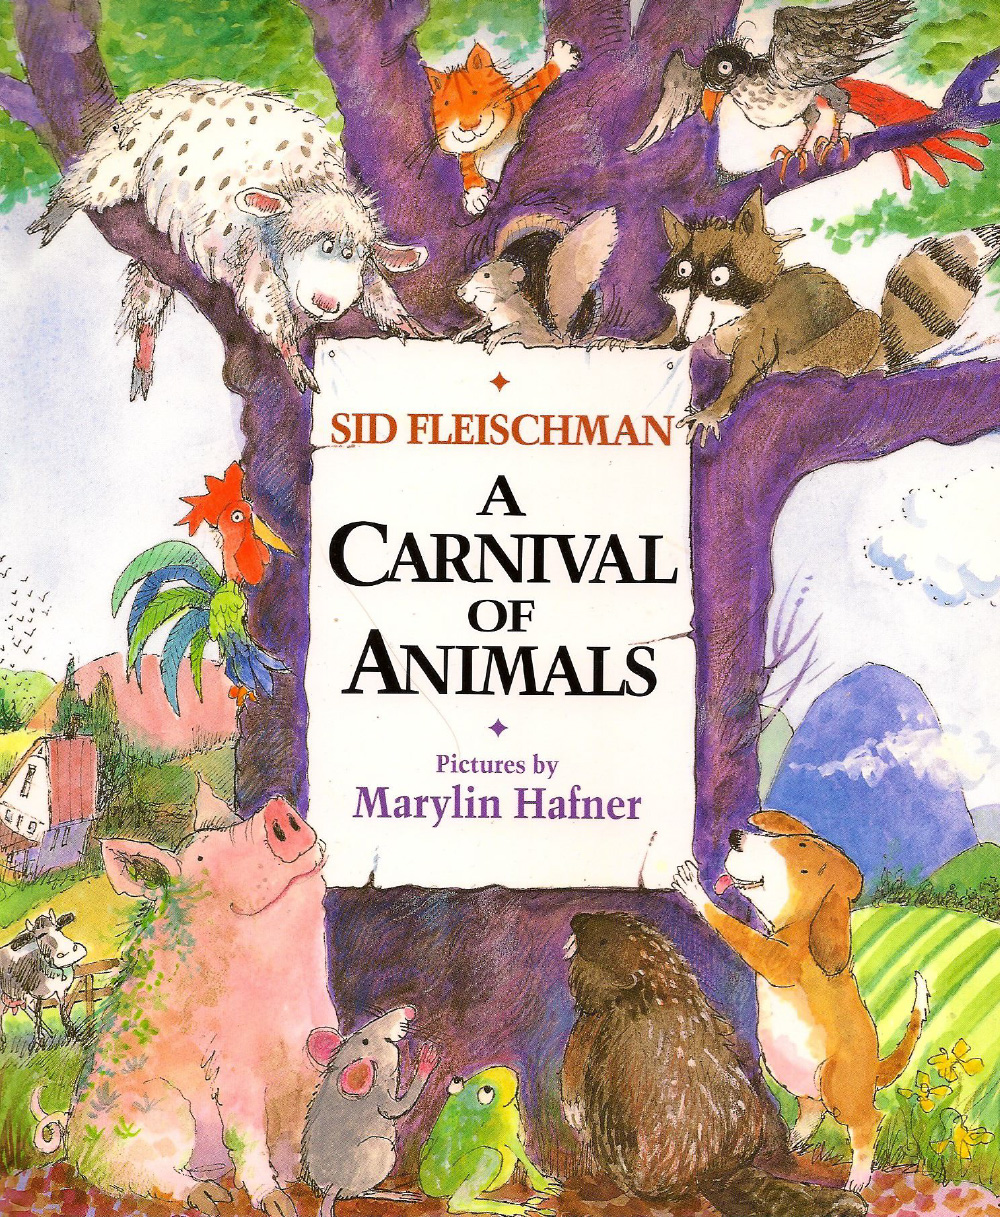 A Carnival of Animals - Illustrated by Marilyn Hafner